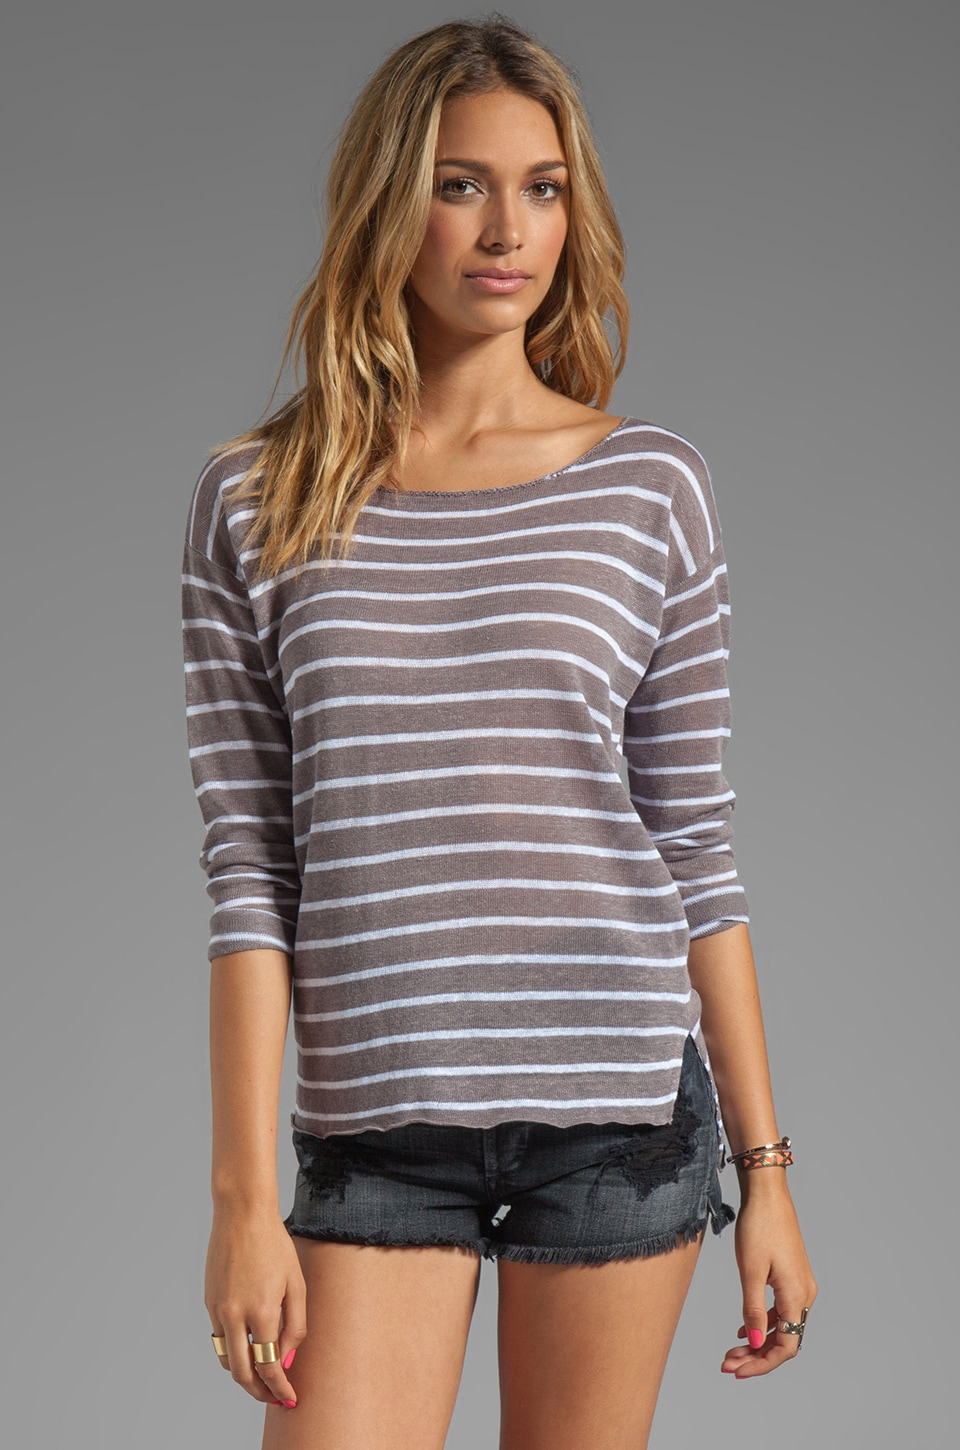 Feel the Piece Striped Boat Neck Sweater in Grey/White